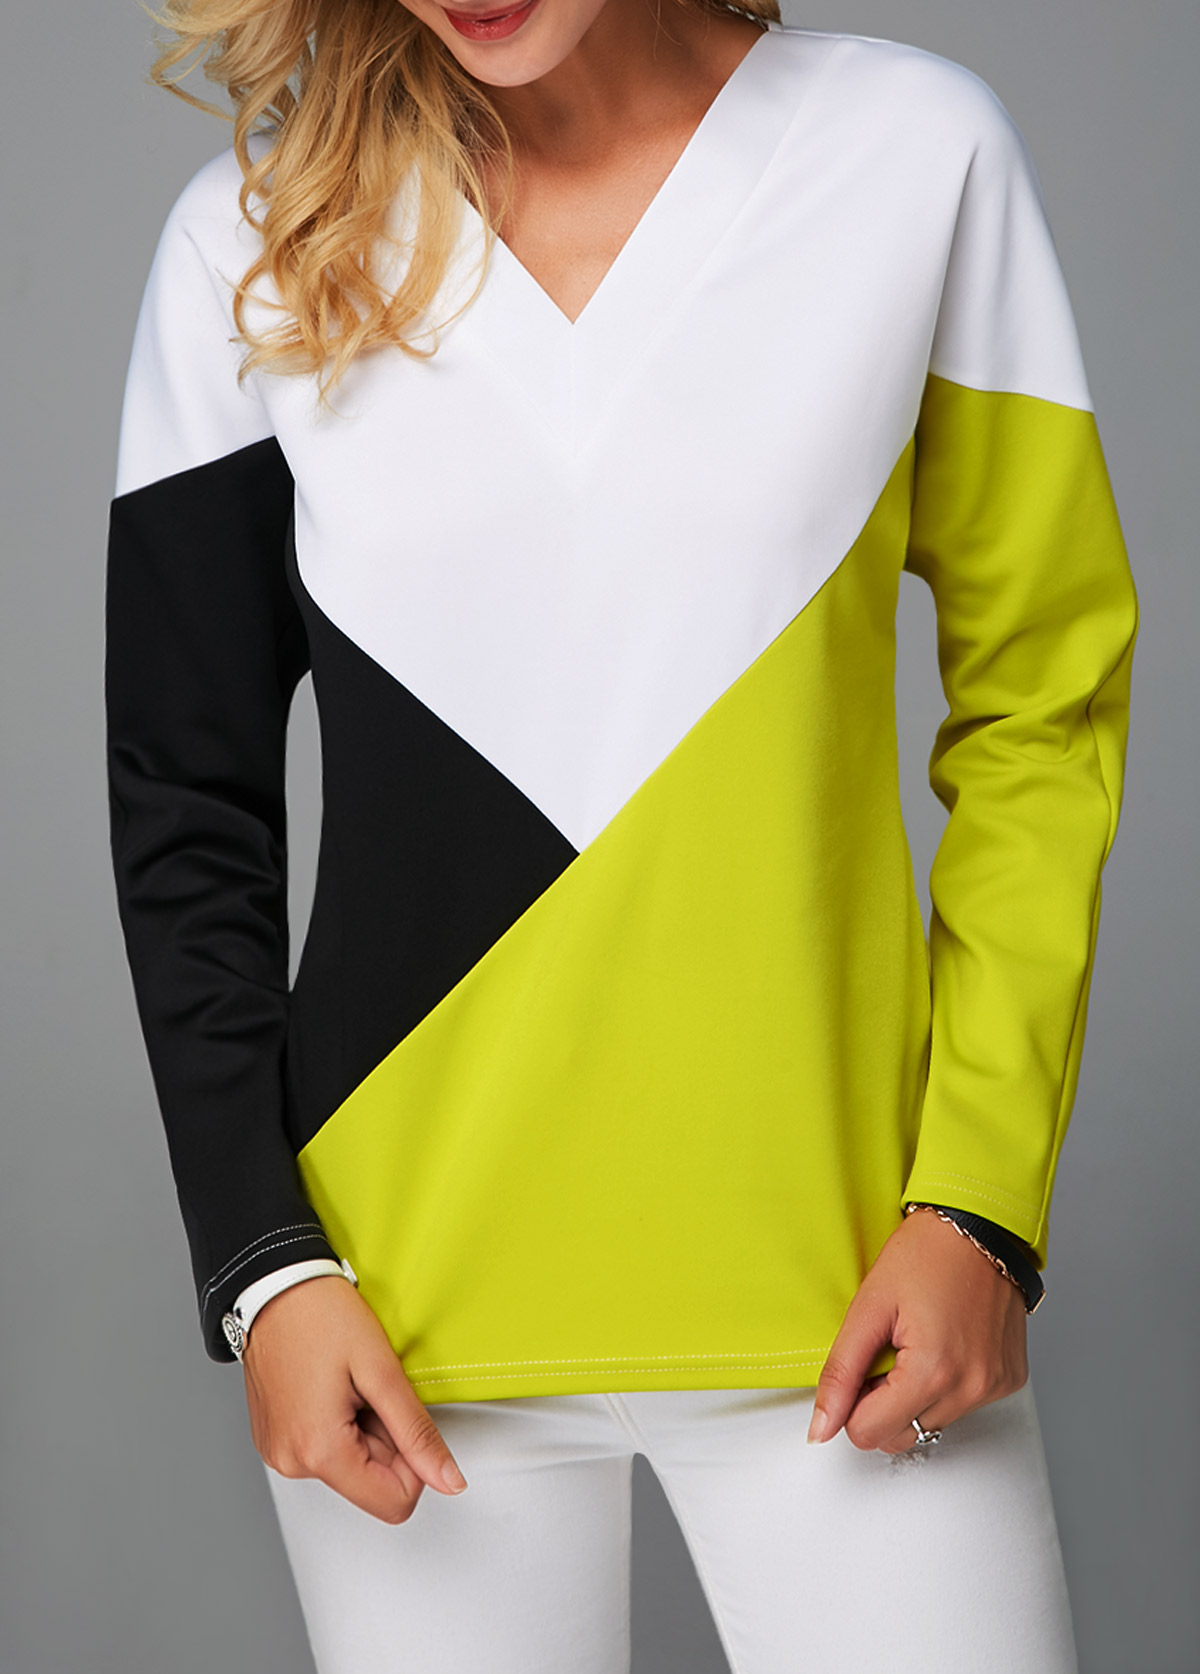 087597585f7 V Neck Long Sleeve Color Block Sweatshirt